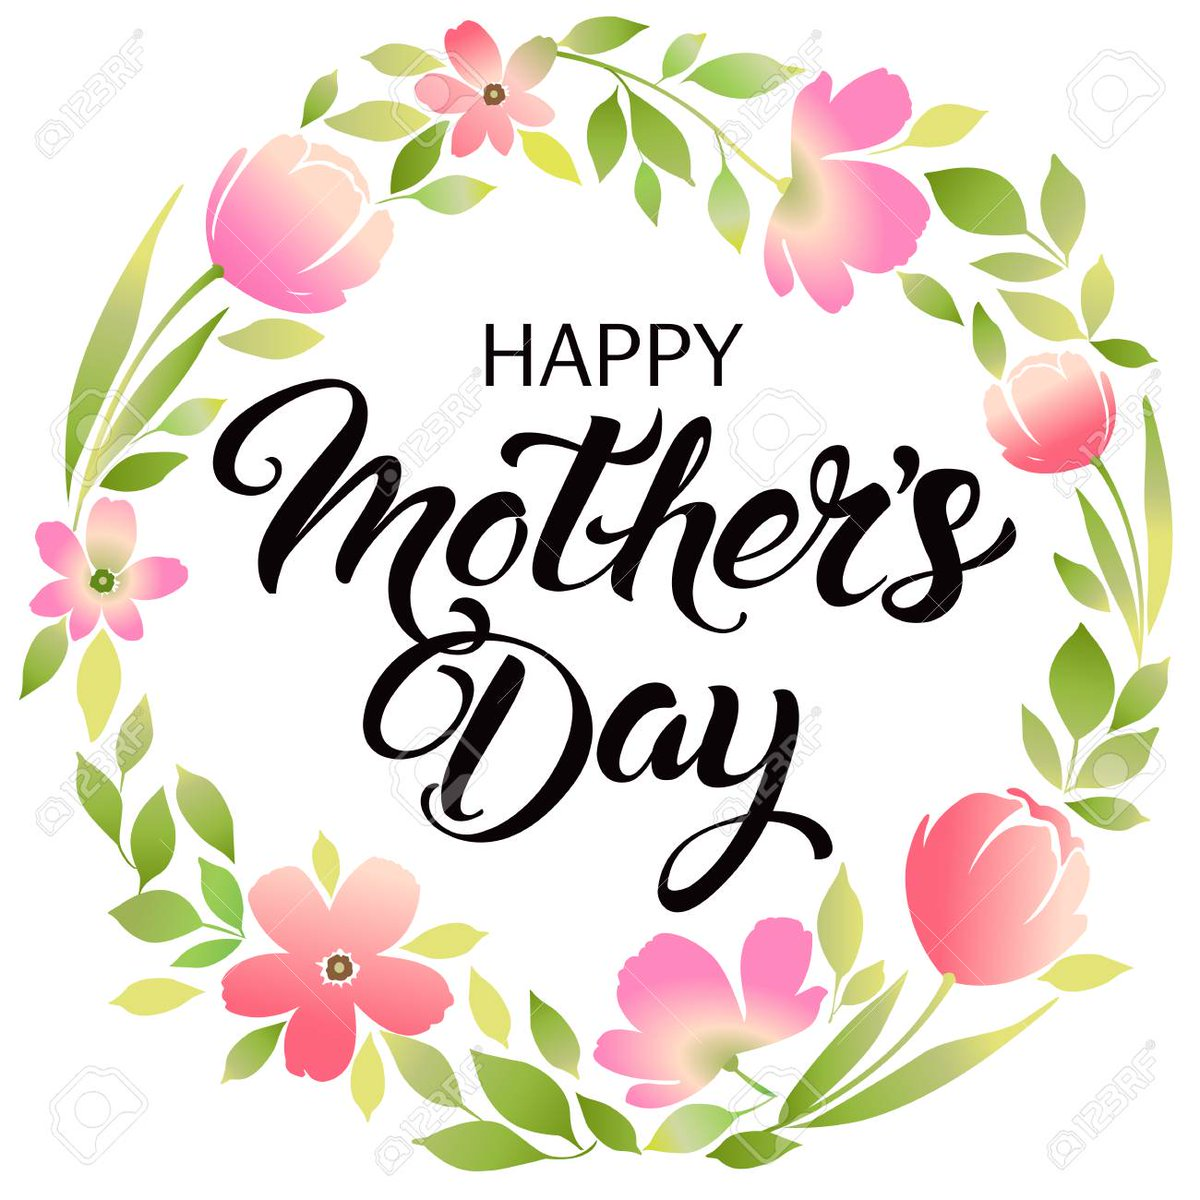 Clipart bible mothers day, Clipart bible mothers day Transparent FREE for  download on WebStockReview 2020